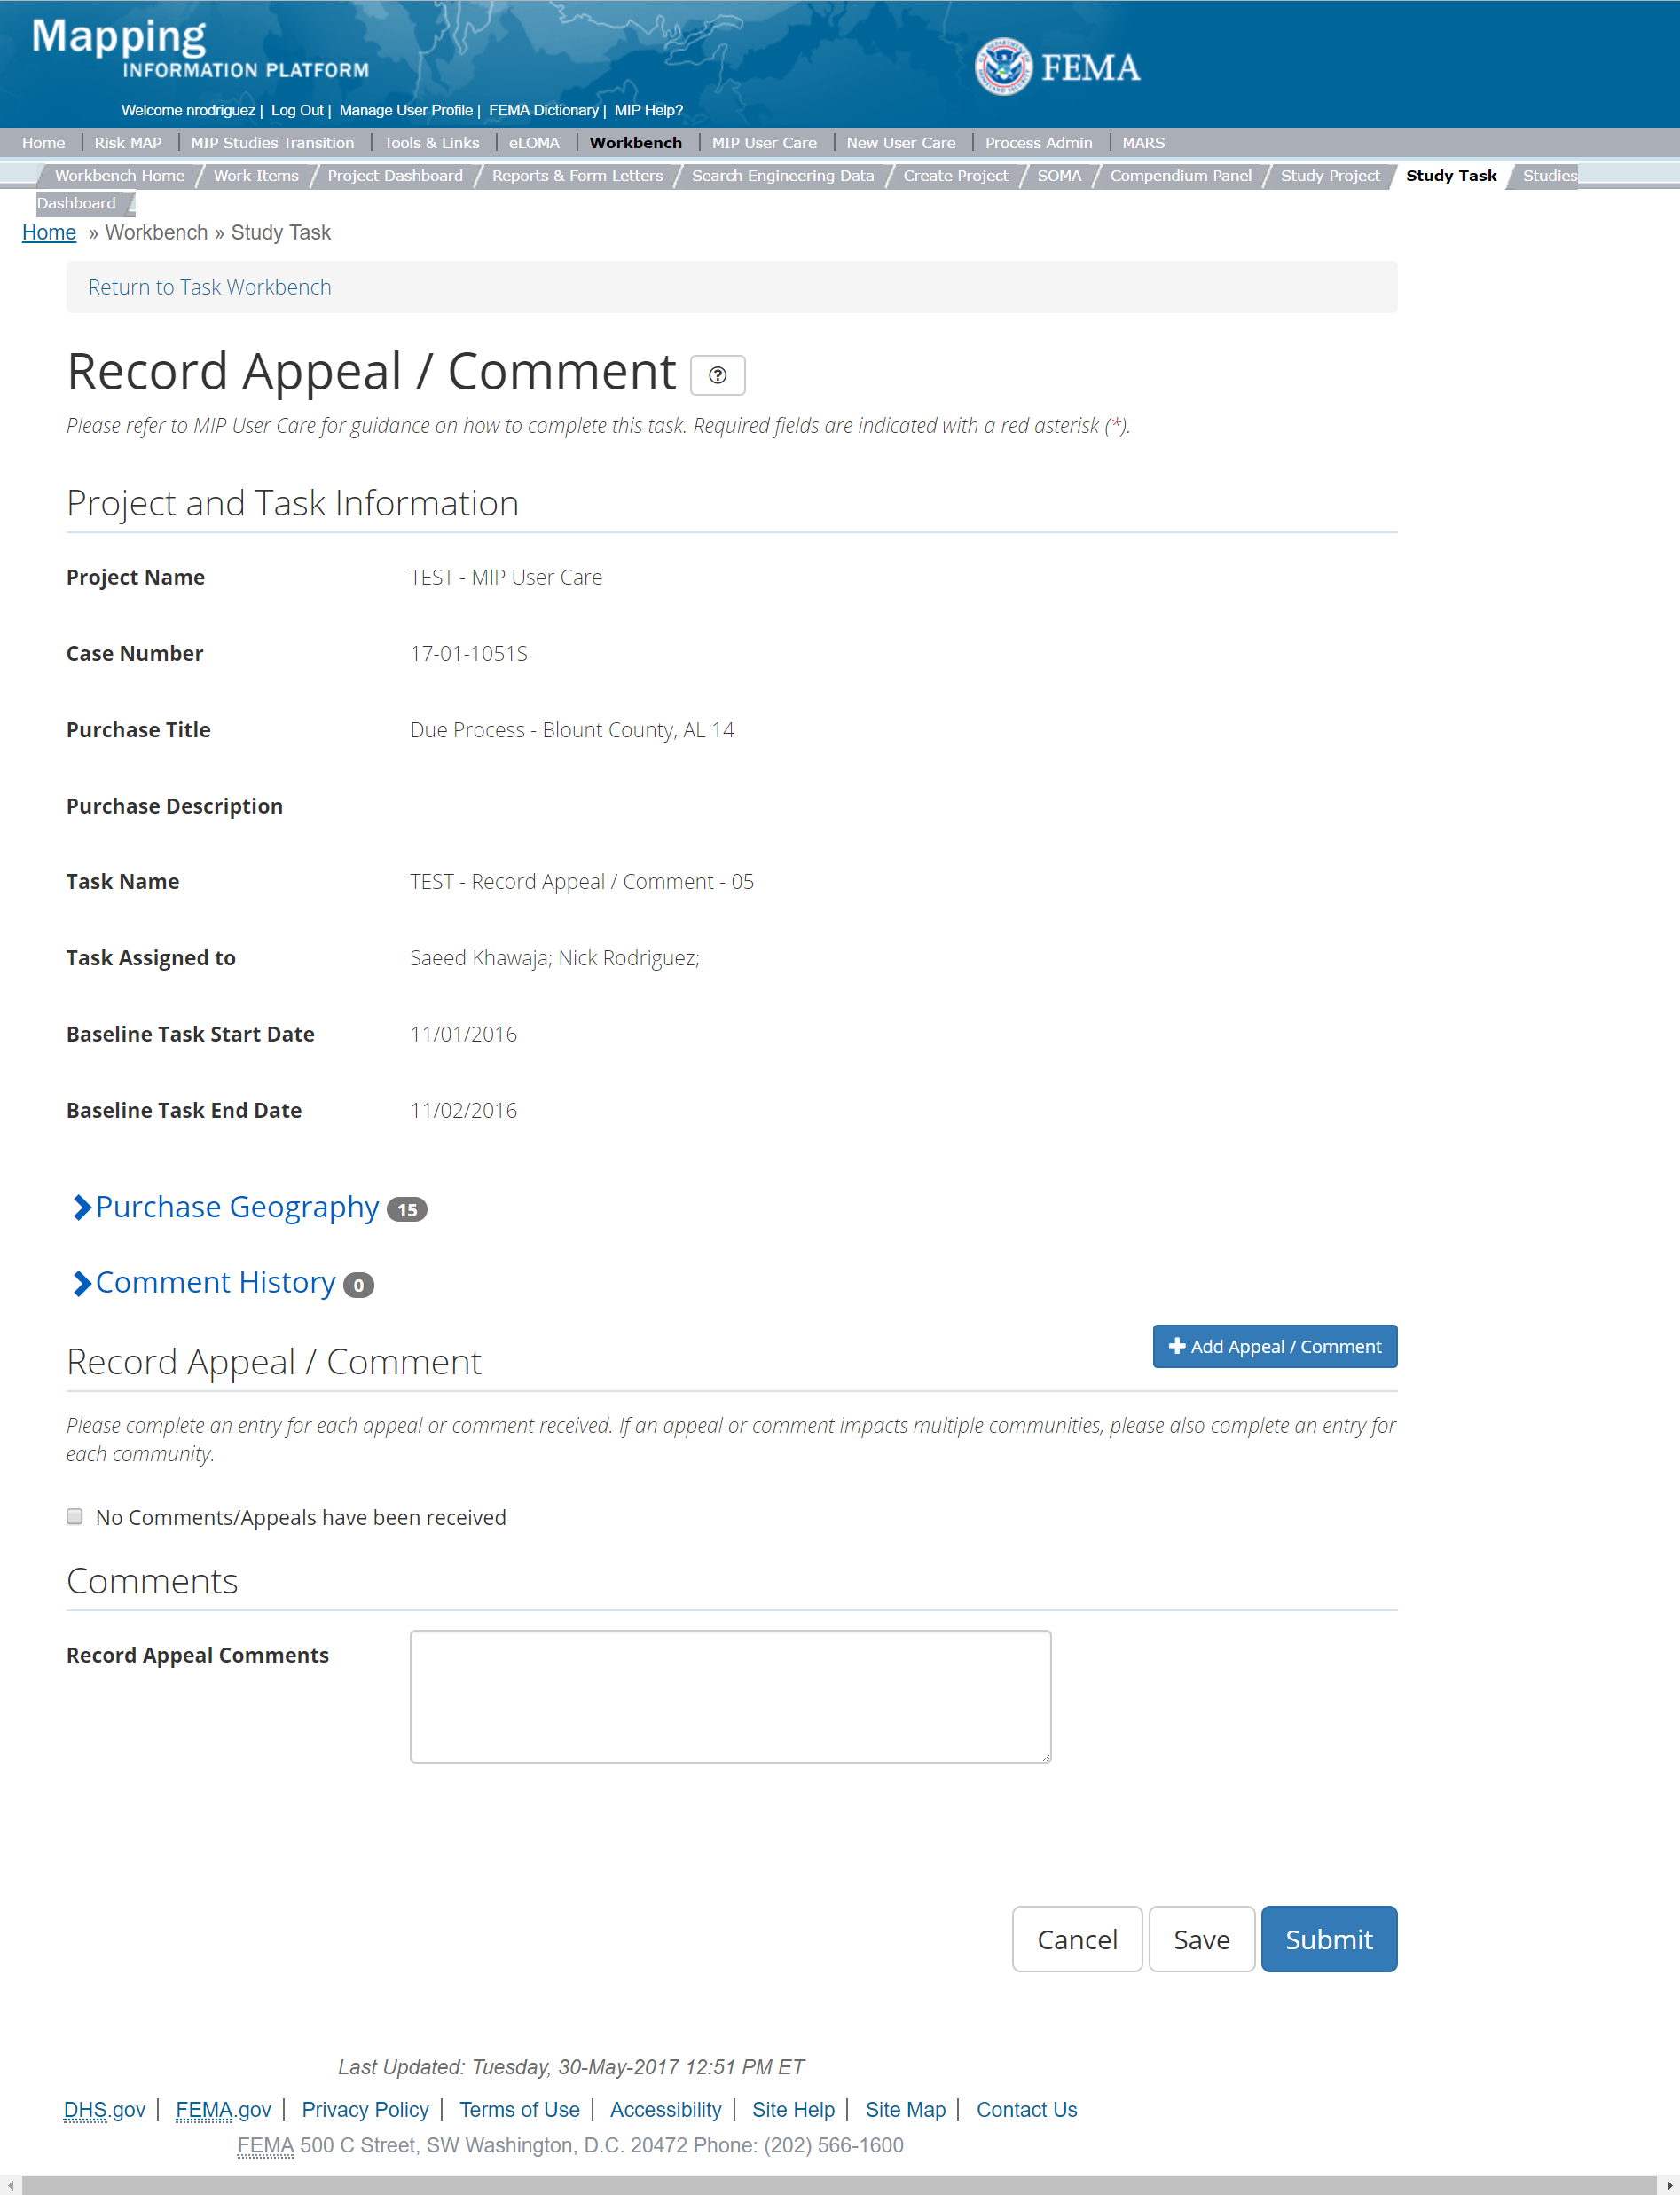 Record Appeal/Comment Task